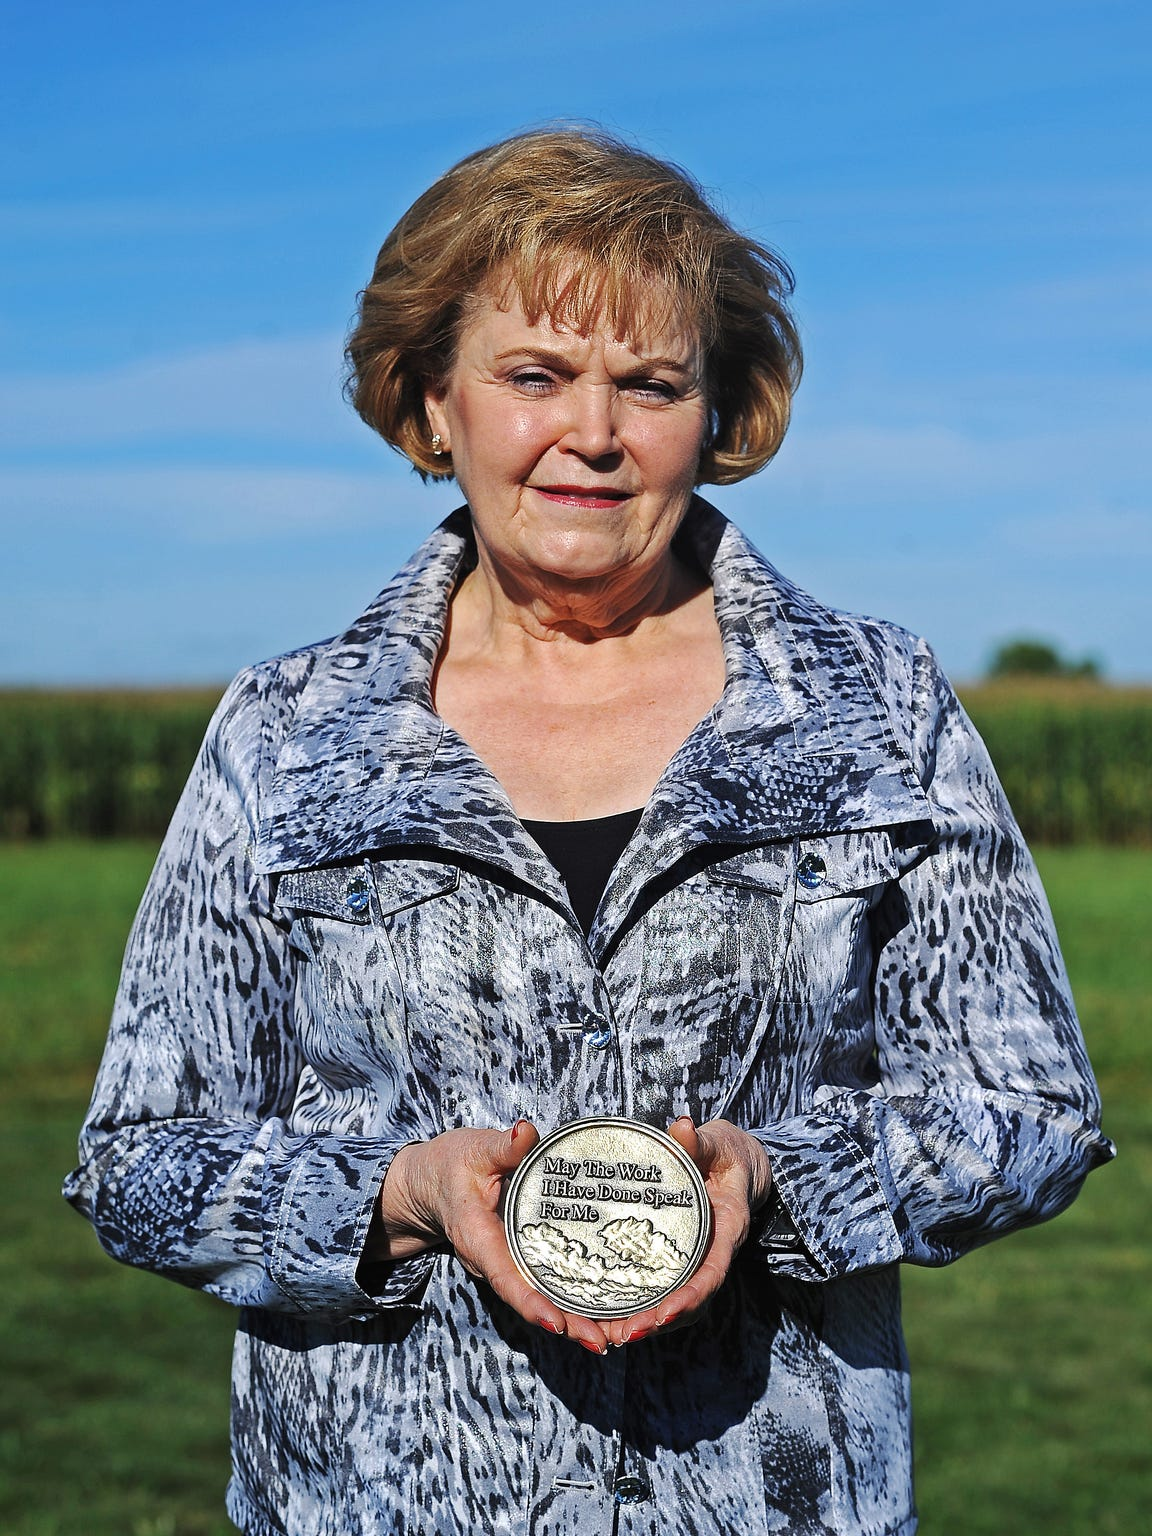 Karen Kratochvil poses for a portrait with a medallion from the funeral of her daughter, Tami Mielke. Kratochvil remembers a time when her daughter went inside after fireworks were shot off in the backyard. It was a result of her PTSD, Kratochvil said.